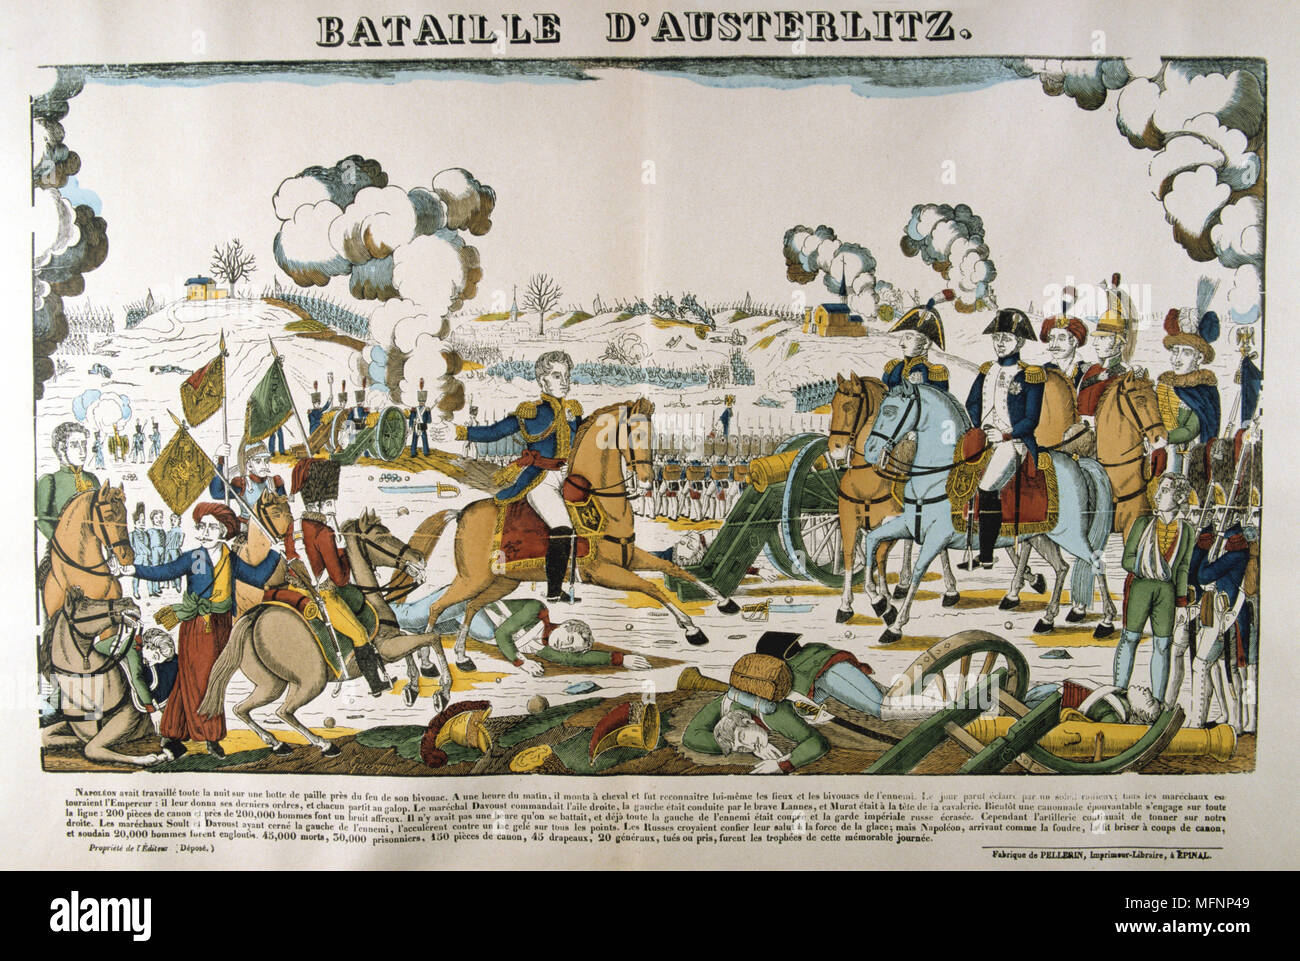 Napoleon at the Battle of Austerlitz  (Bitva u Slavkova) also known as the Battle of the Three Emperors, l December 1805.  Decisive French victory over the Russian and Austrian empires, one of Napoleon's greatest victories. Popular French hand-coloured woodcut. - Stock Image